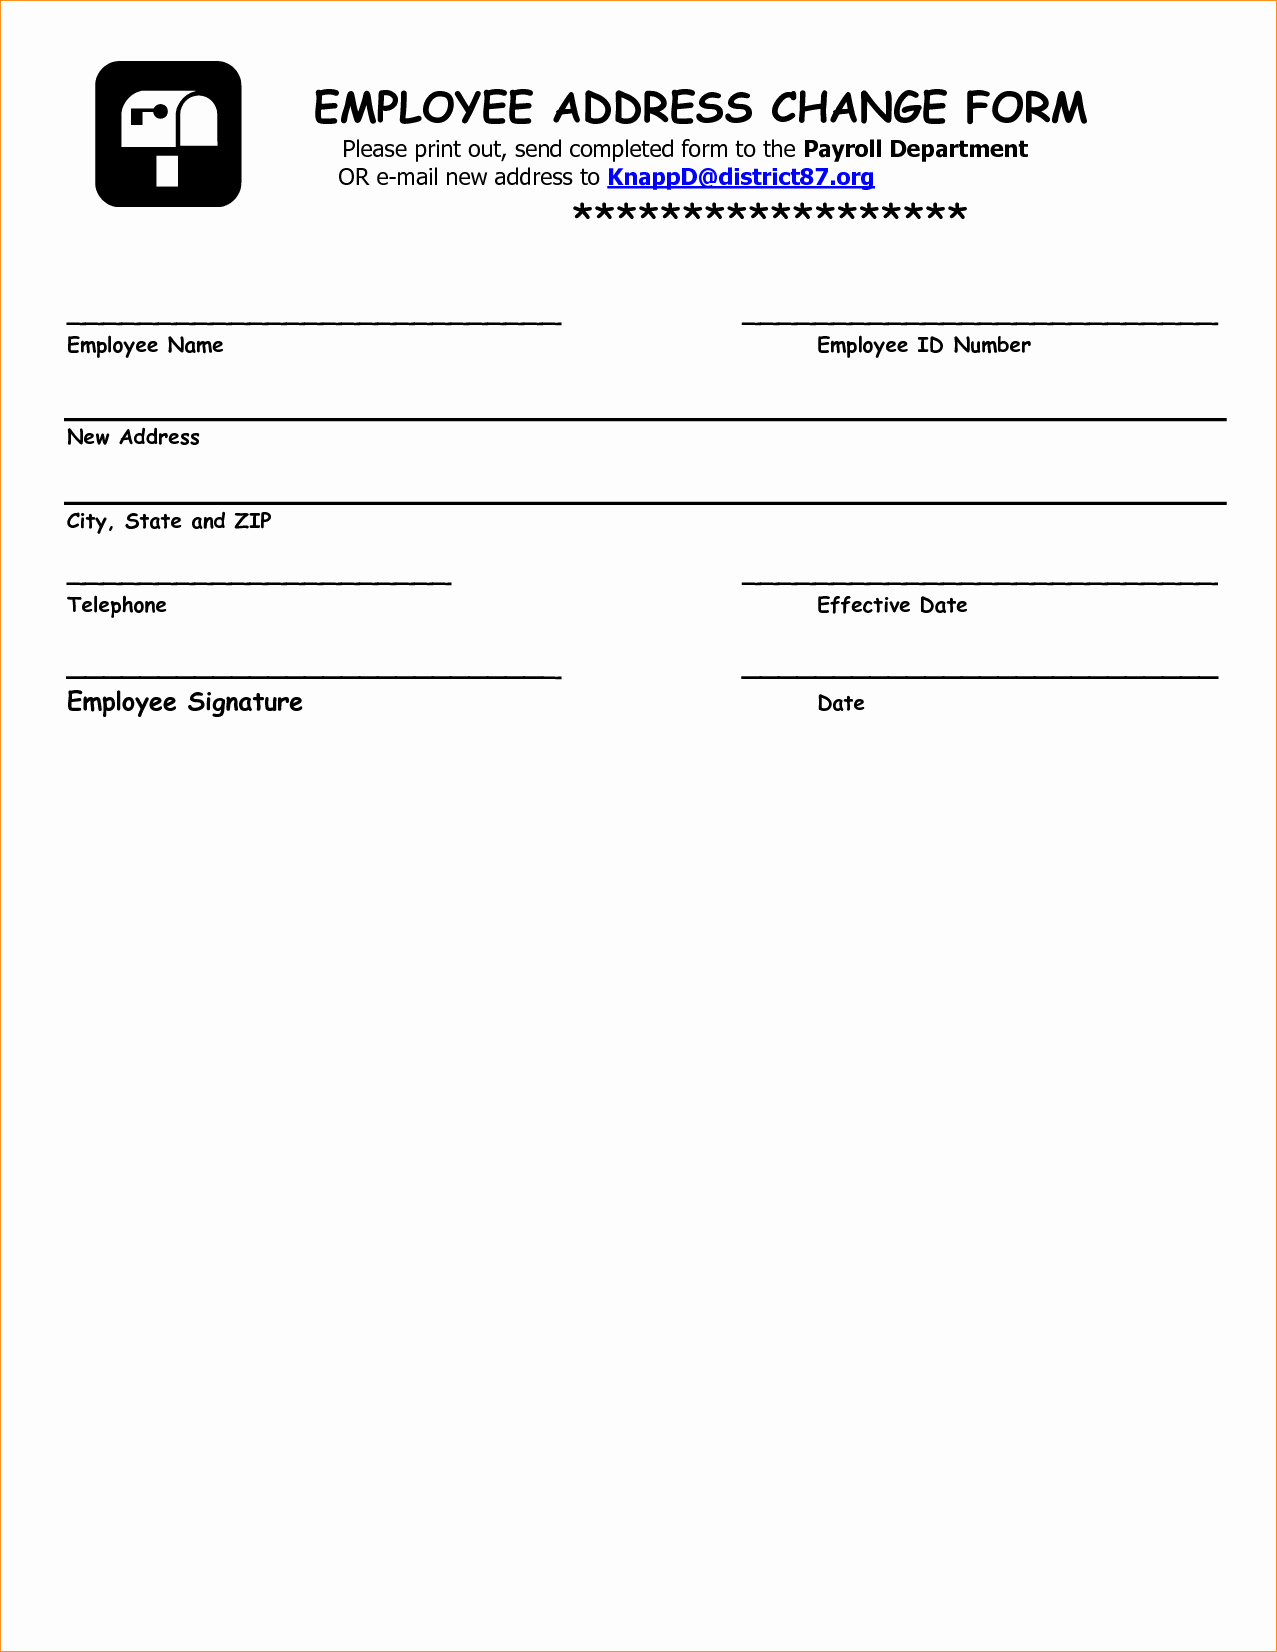 Employee Change form Template New Address form Template Business Proposal Templated